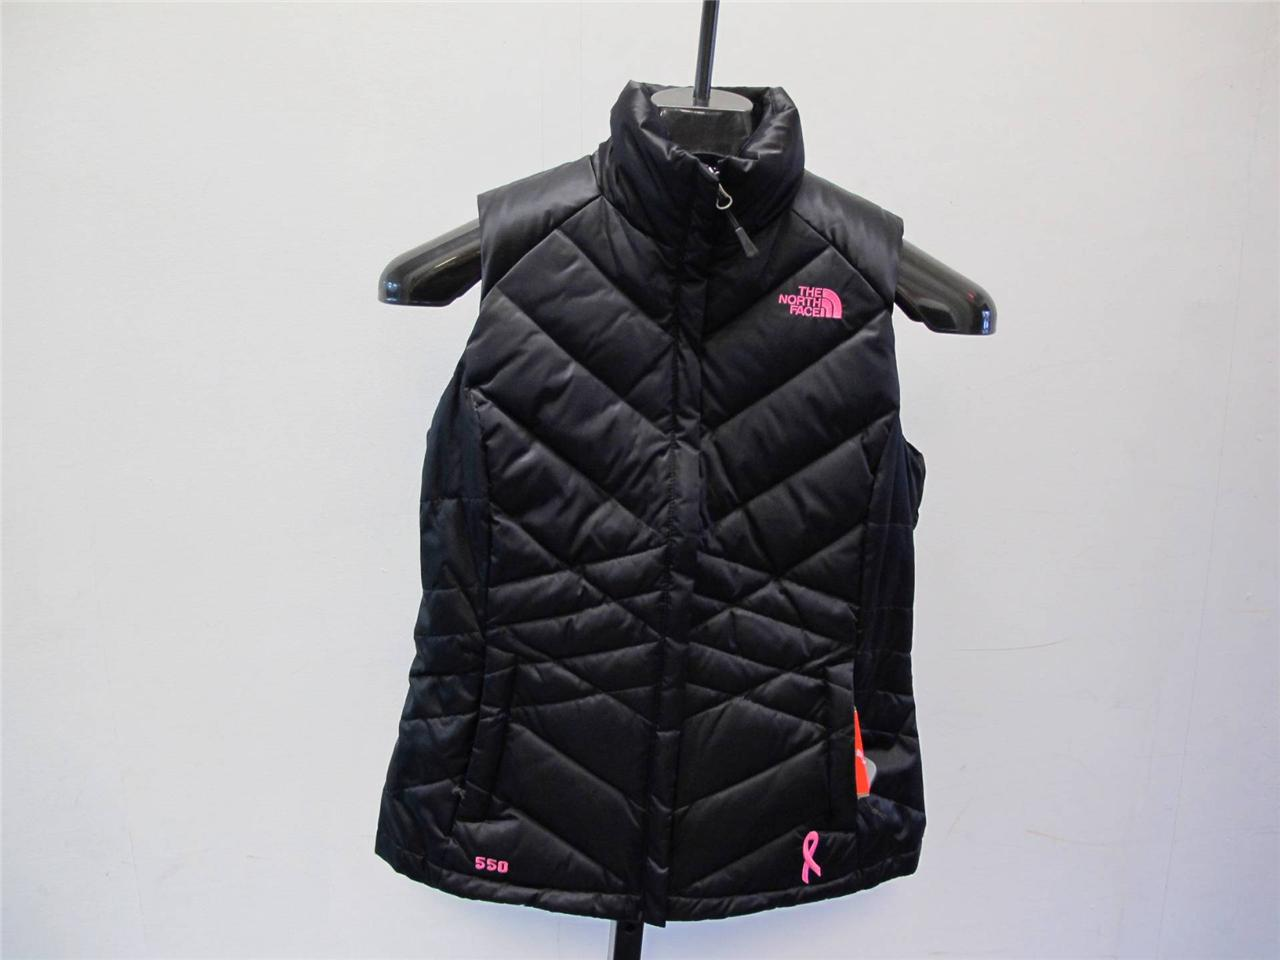 NEW-WOMEN-039-S-NORTH-FACE-ACONCAGUA-PR-BREAST-CANCER-VEST-A7XWJK3-BLACK